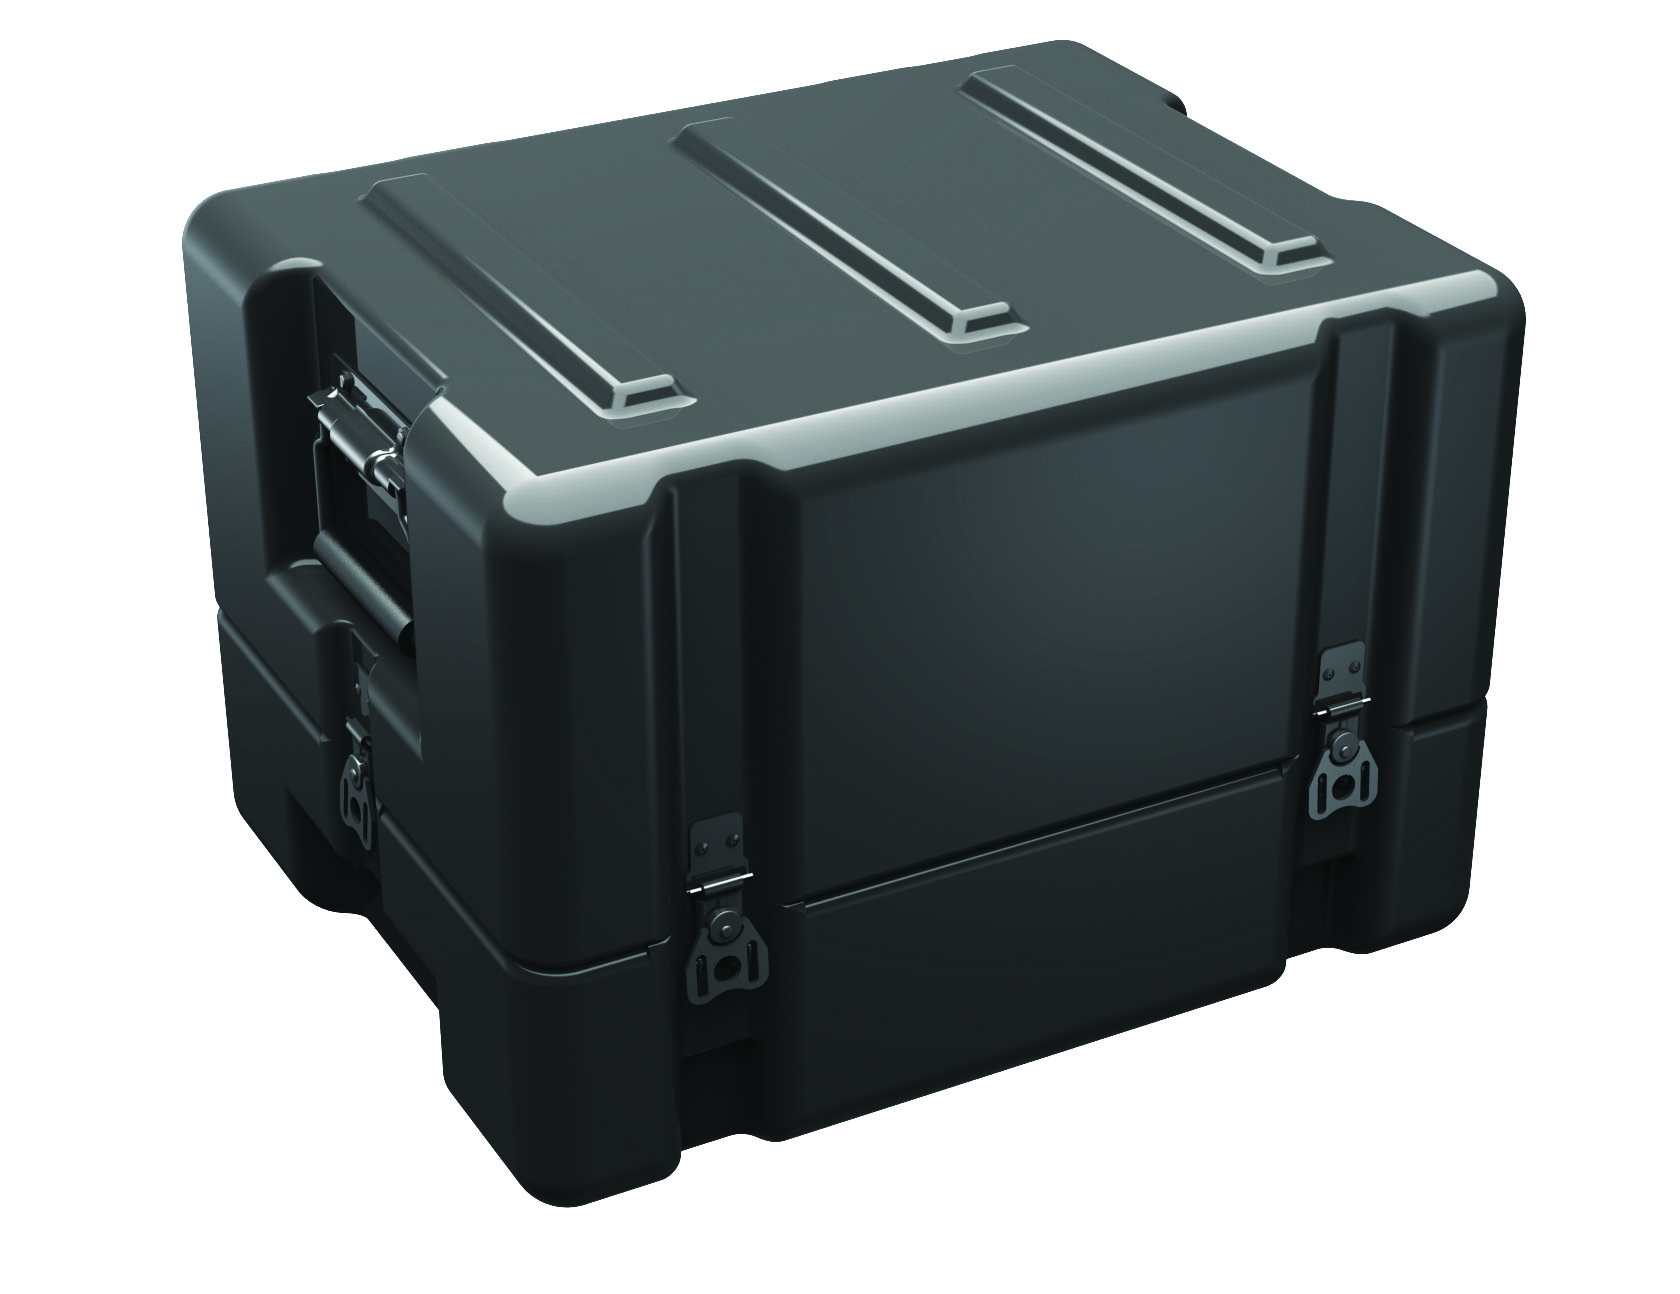 CL1713-0408 - CL1713-0408AC/HL Pelican Hardigg Protective Cases